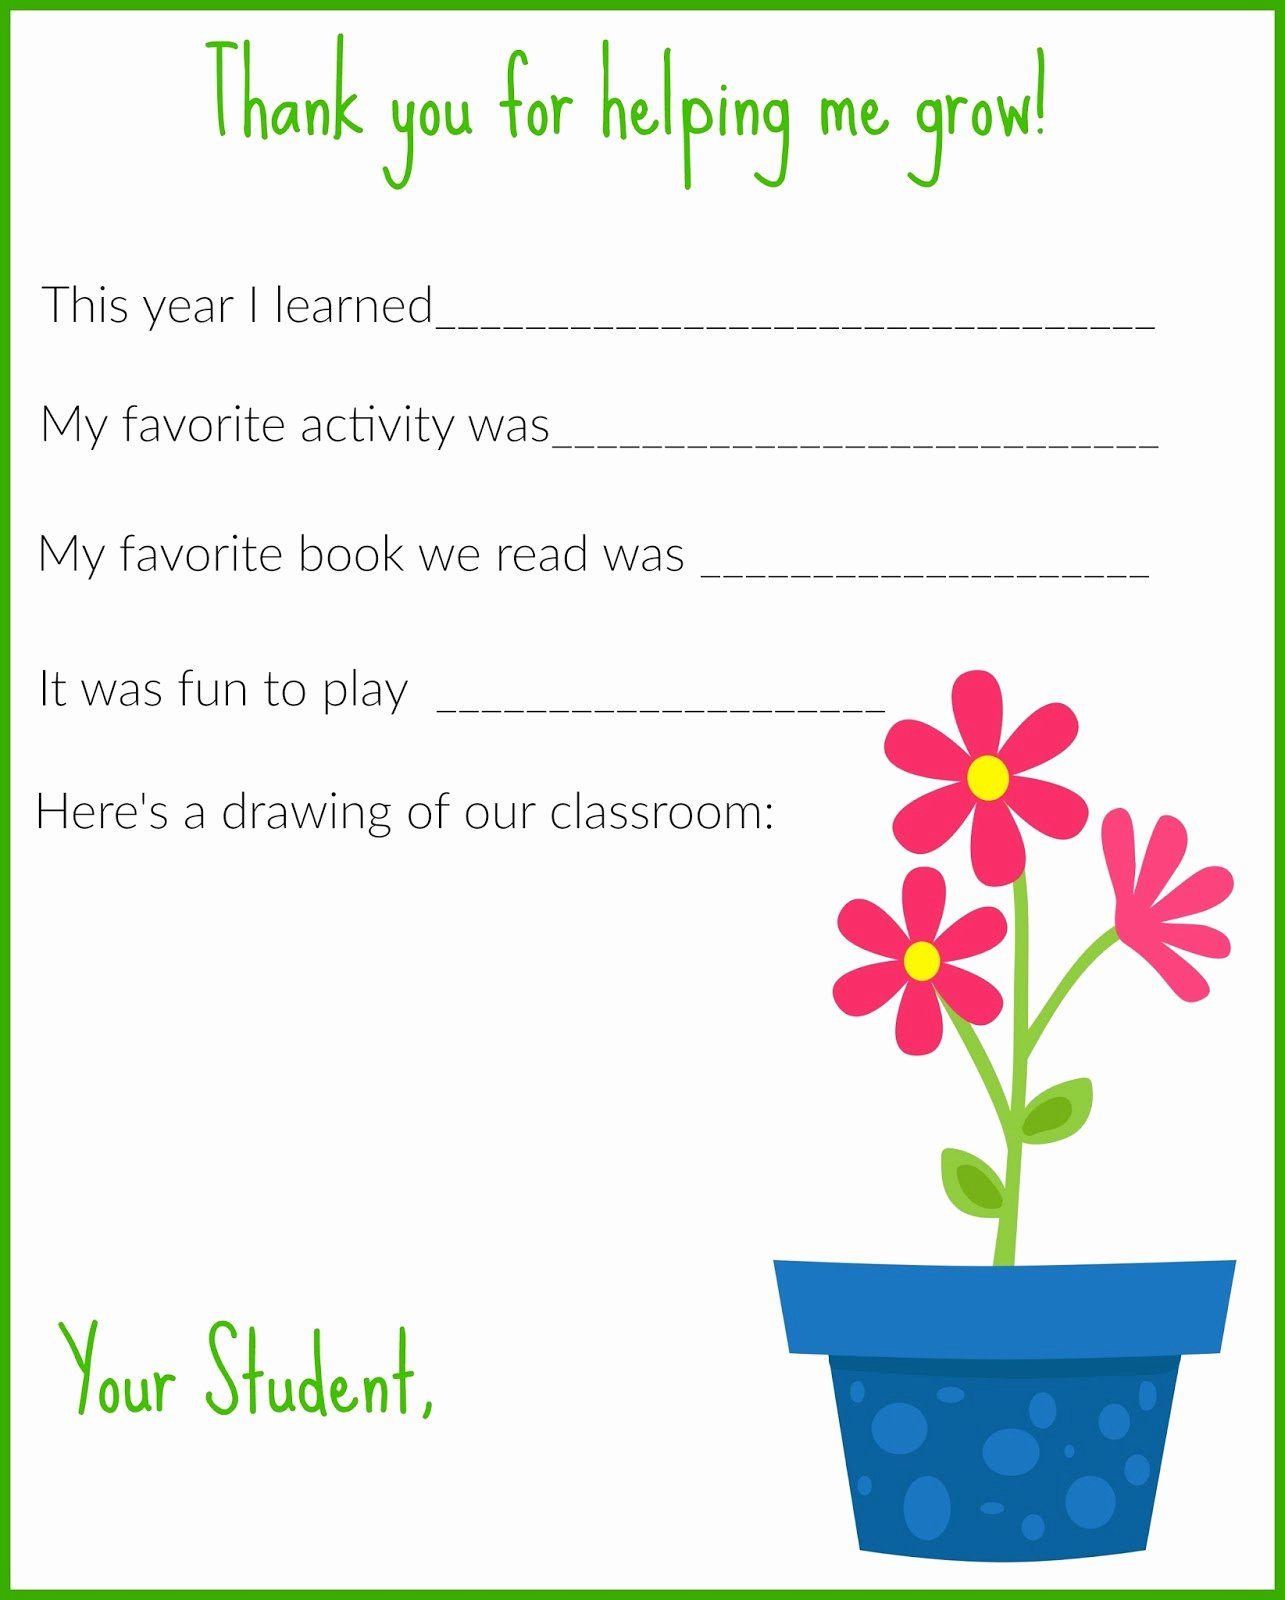 Thank You Note Teacher Inspirational A Thank You Letter for Teachers Free Printable the